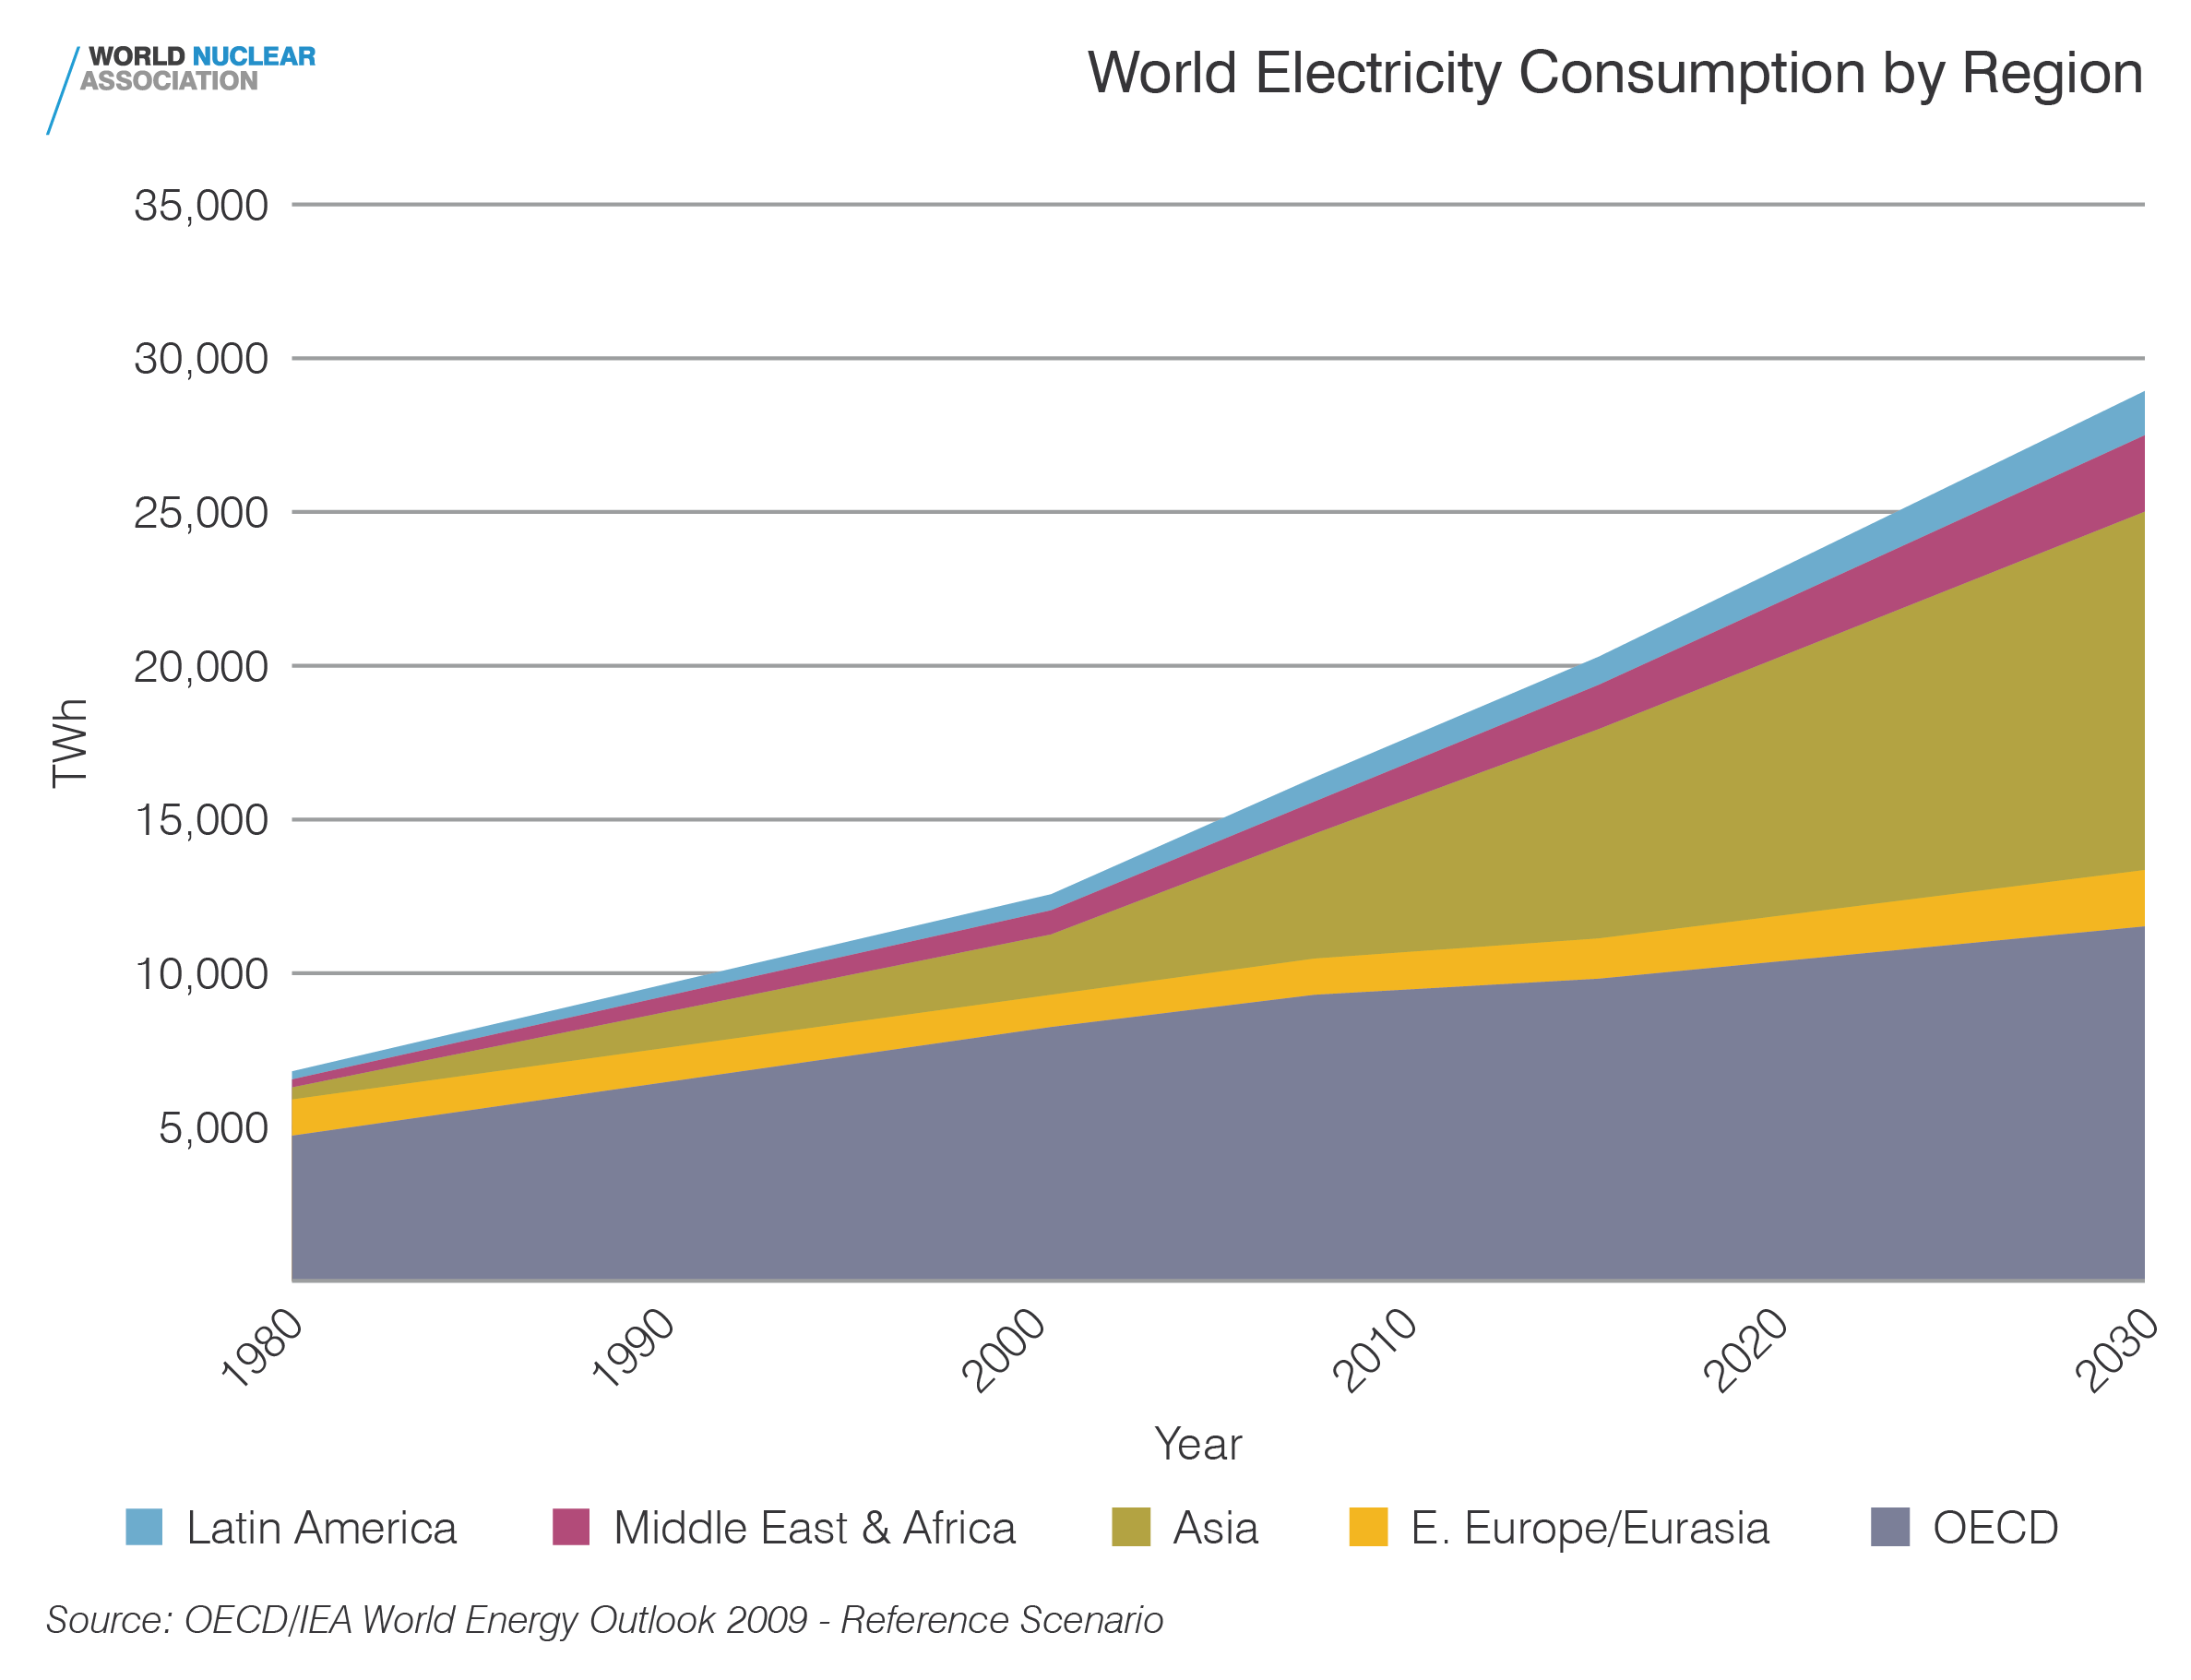 World electricity consumption